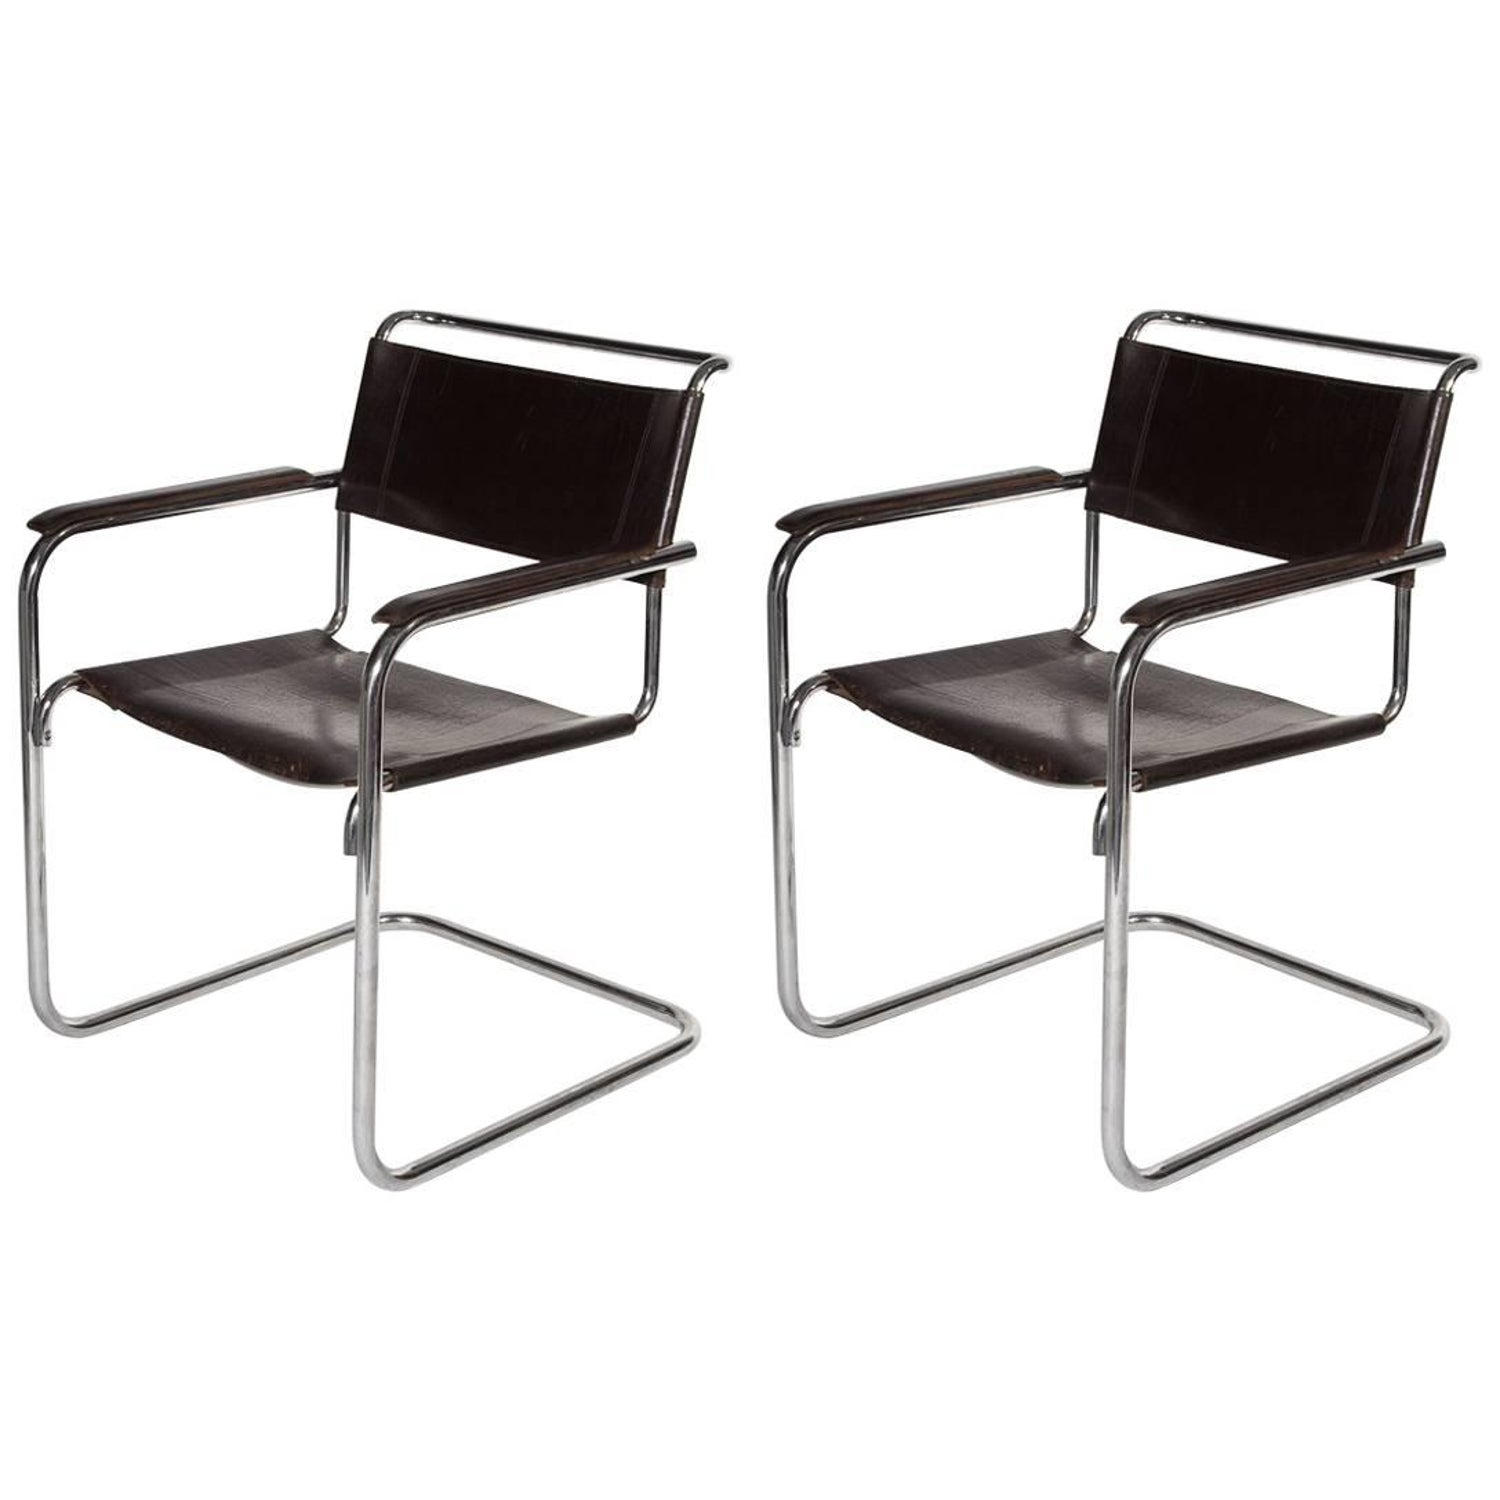 Bauhaus tubular steel lounge chair at 1stdibs - 20th Century Thonet Cantilever Bauhaus Armchairs S34 Designed By Mart Stam 1927 For Sale At 1stdibs